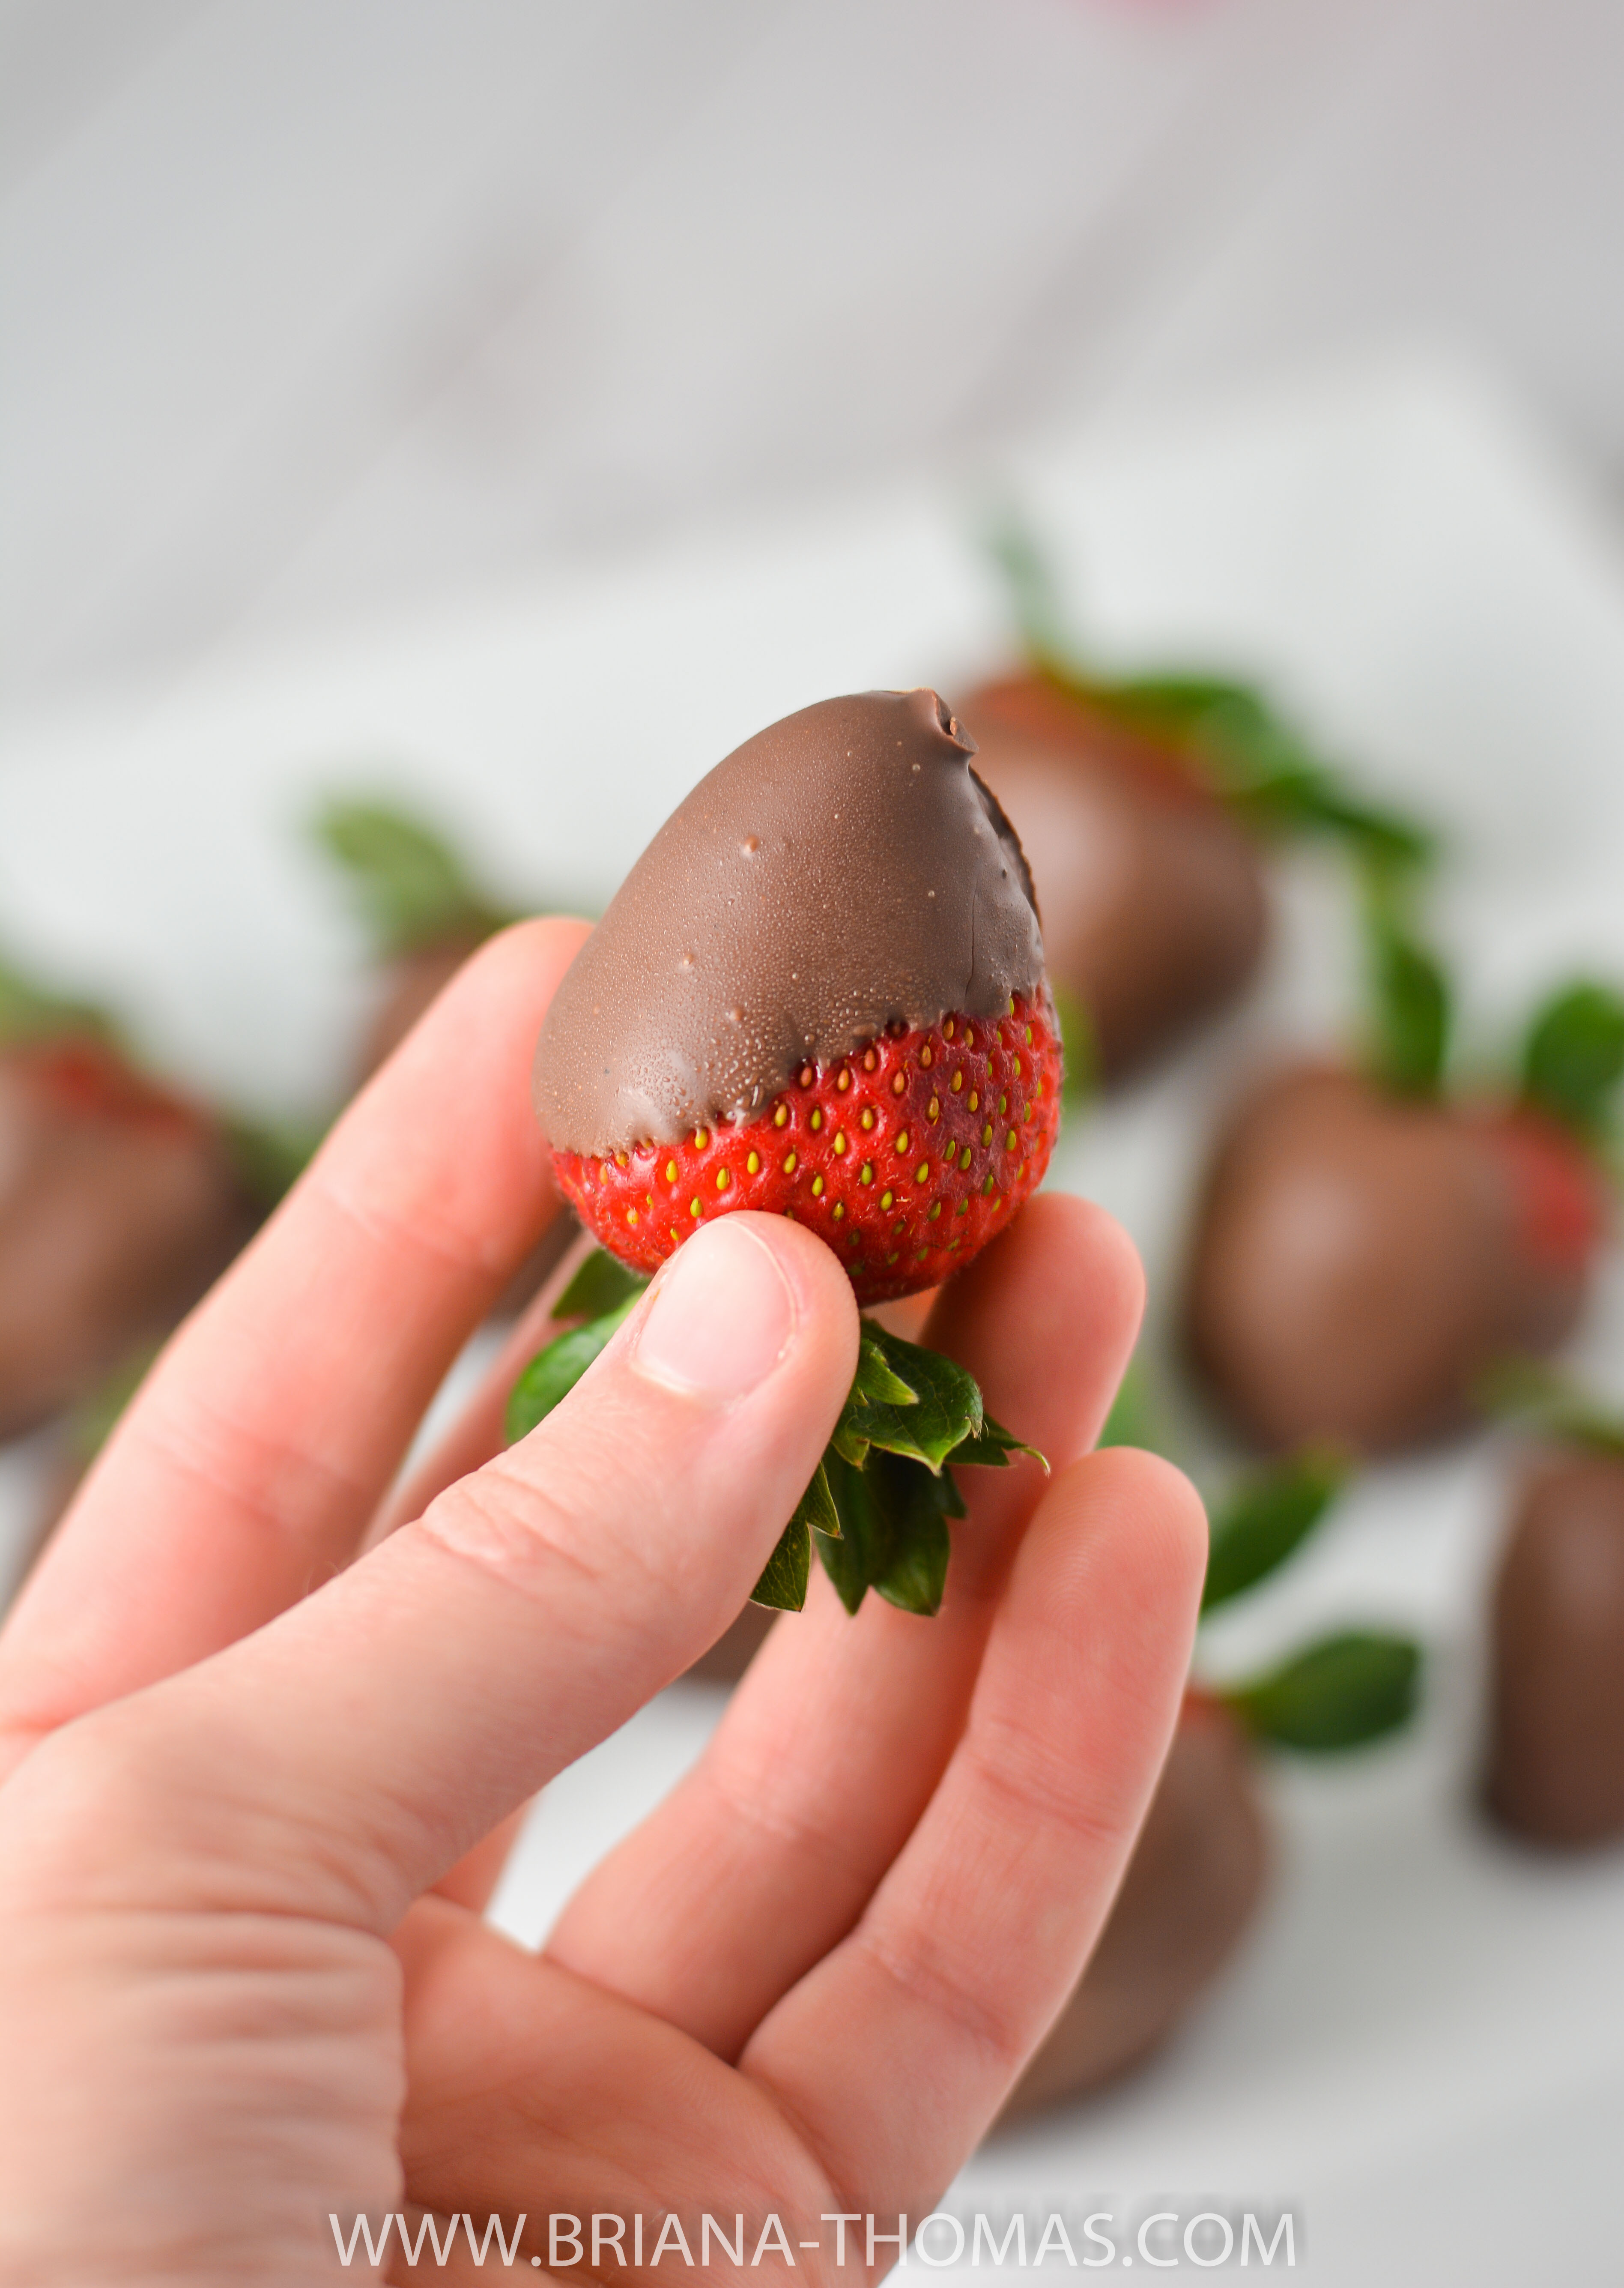 These Ganache-Covered Strawberries only take 5 ingredients and are THM S and low carb! Perfect for your healthy Valentine's Day party!